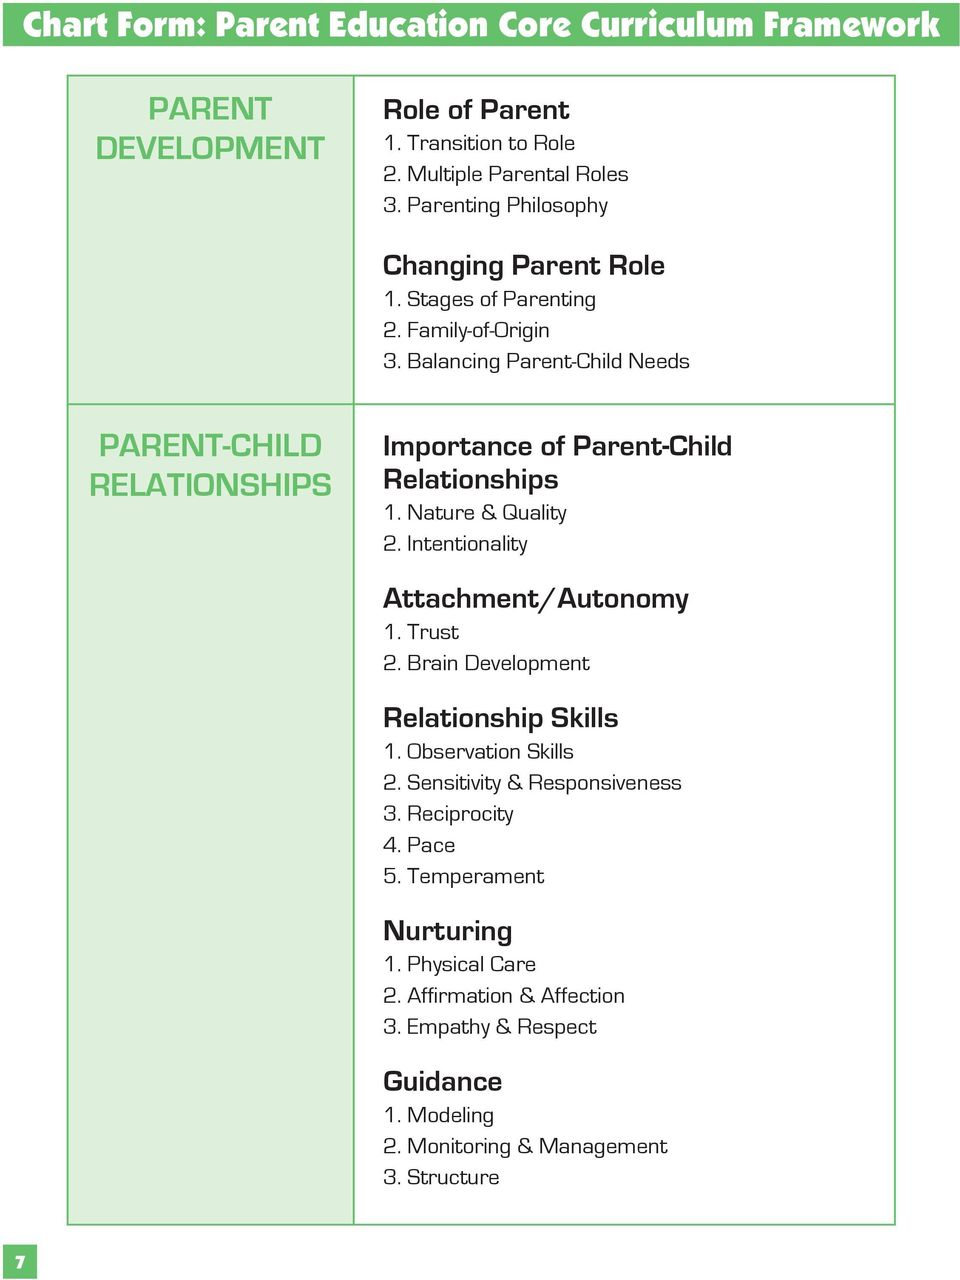 Balancing Parent-Child Needs PARENT-CHILD RELATIONSHIPS Importance of Parent-Child Relationships 1. Nature & Quality 2. Intentionality Attachment/Autonomy 1. Trust 2.